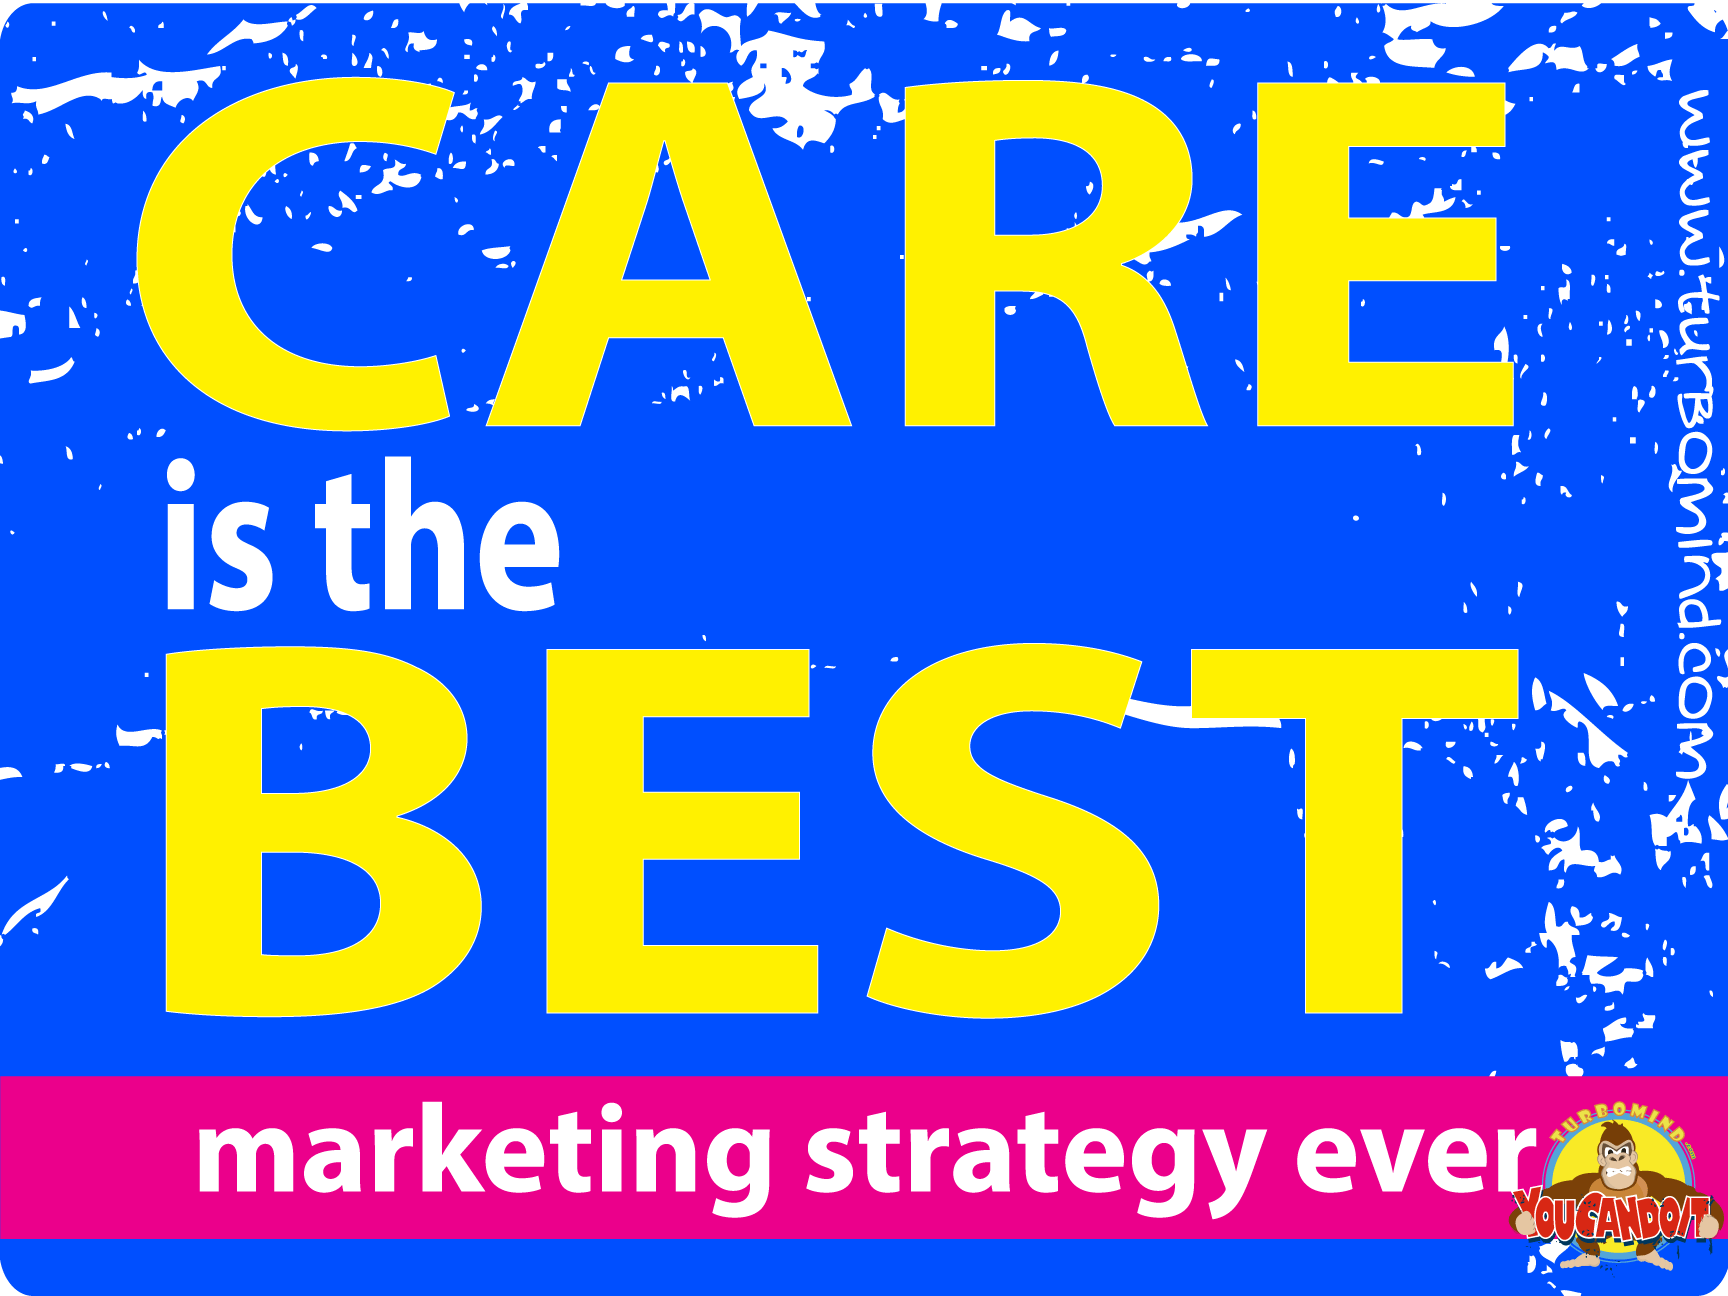 CARE IS THE BEST MARKETING STRATEGY